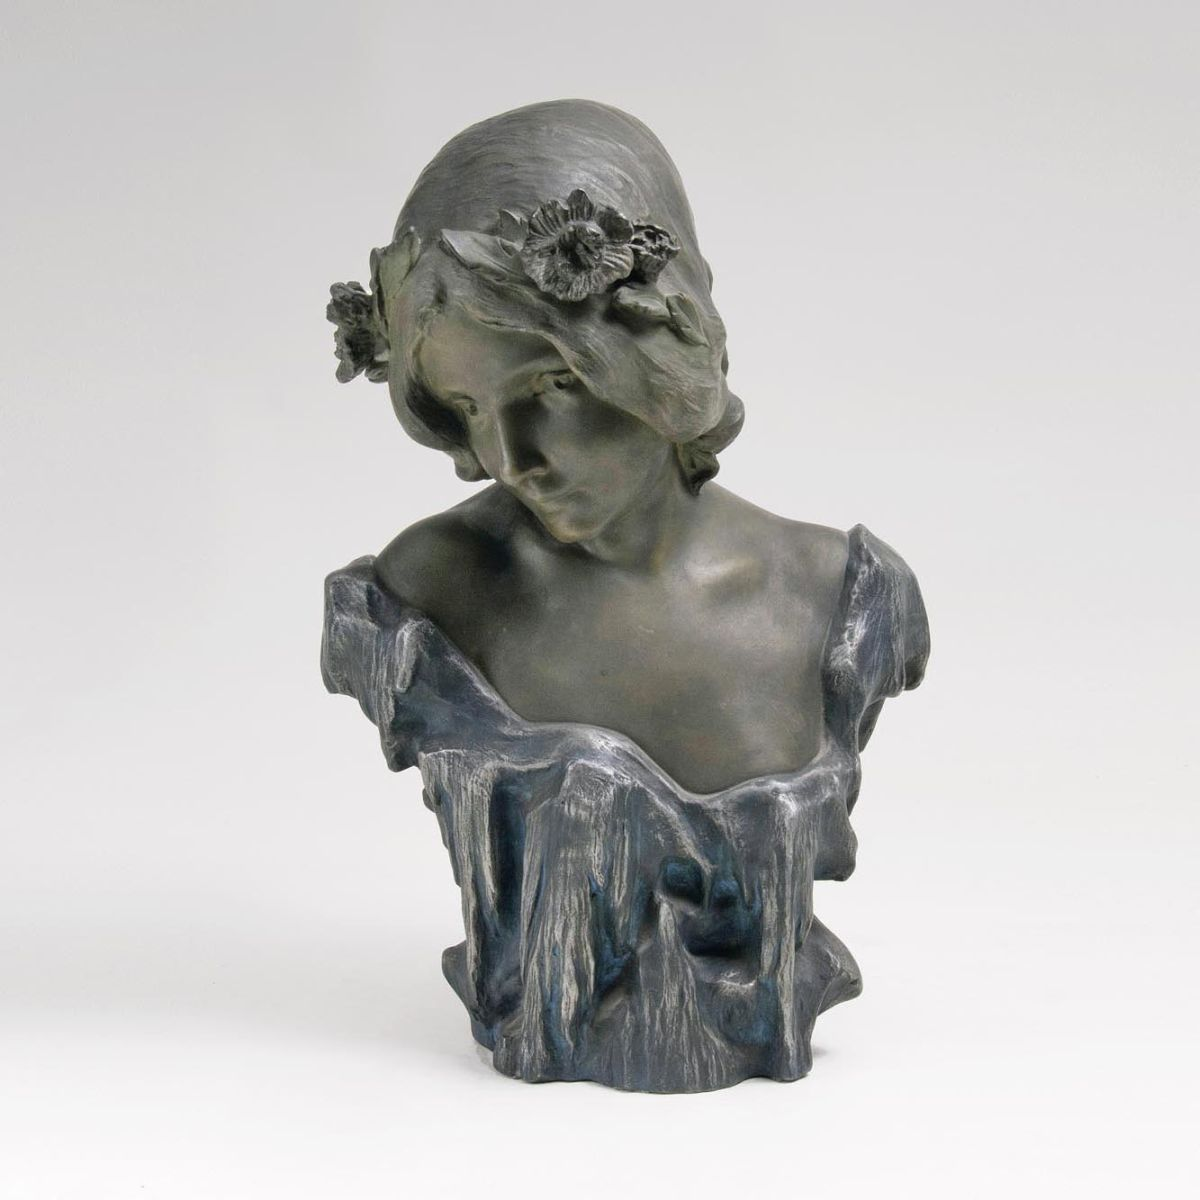 An Art Nouveau Bust of a Nymph with Flowers in the Hair